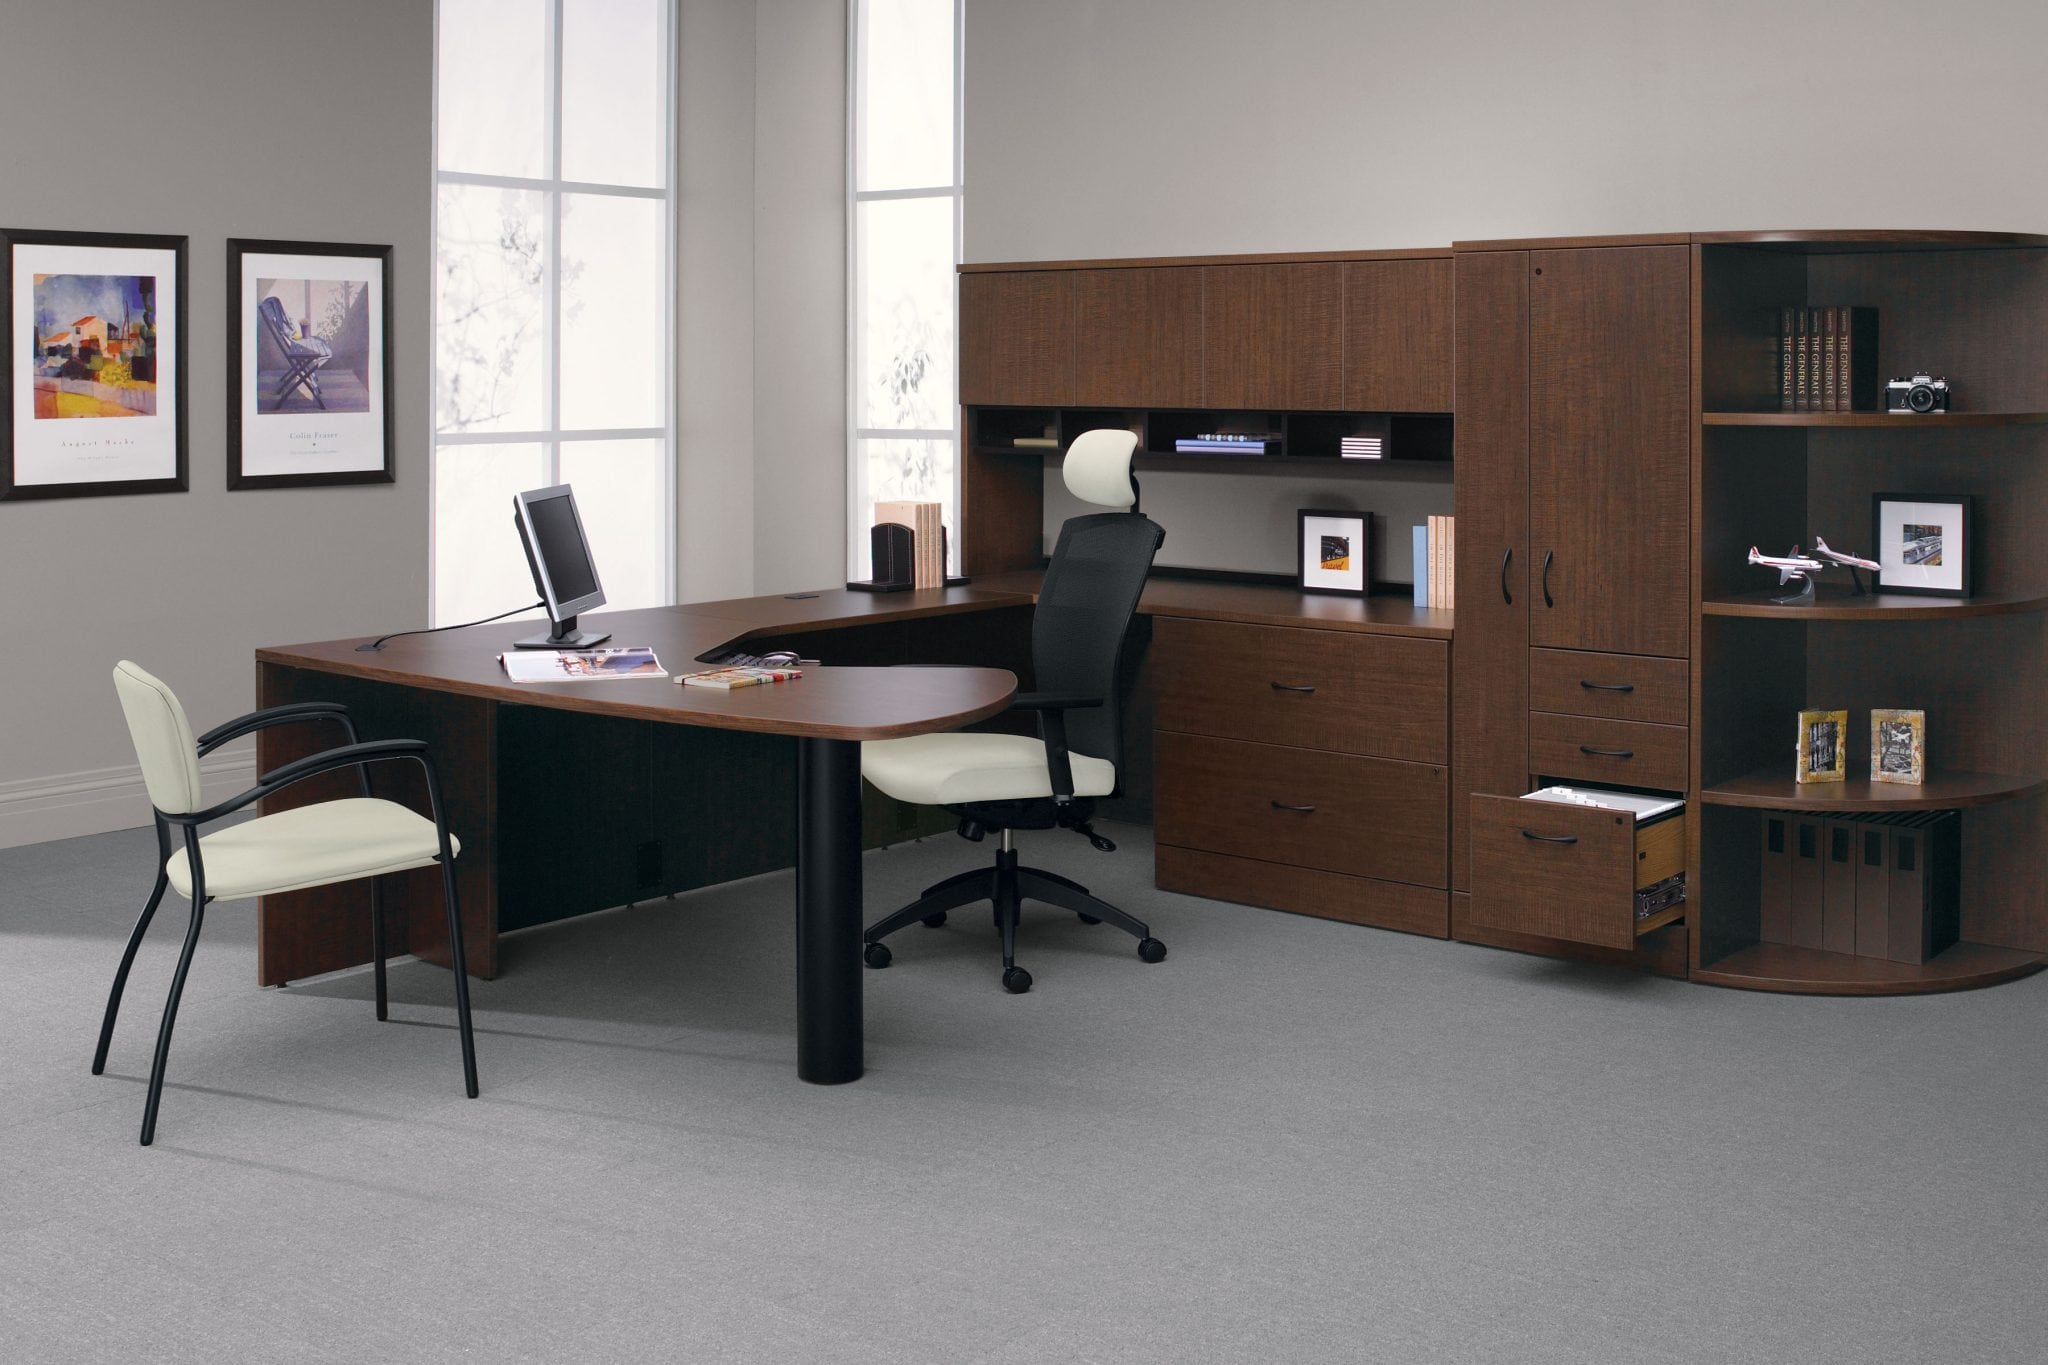 Adaptabilities Desk - A variety of colors and components